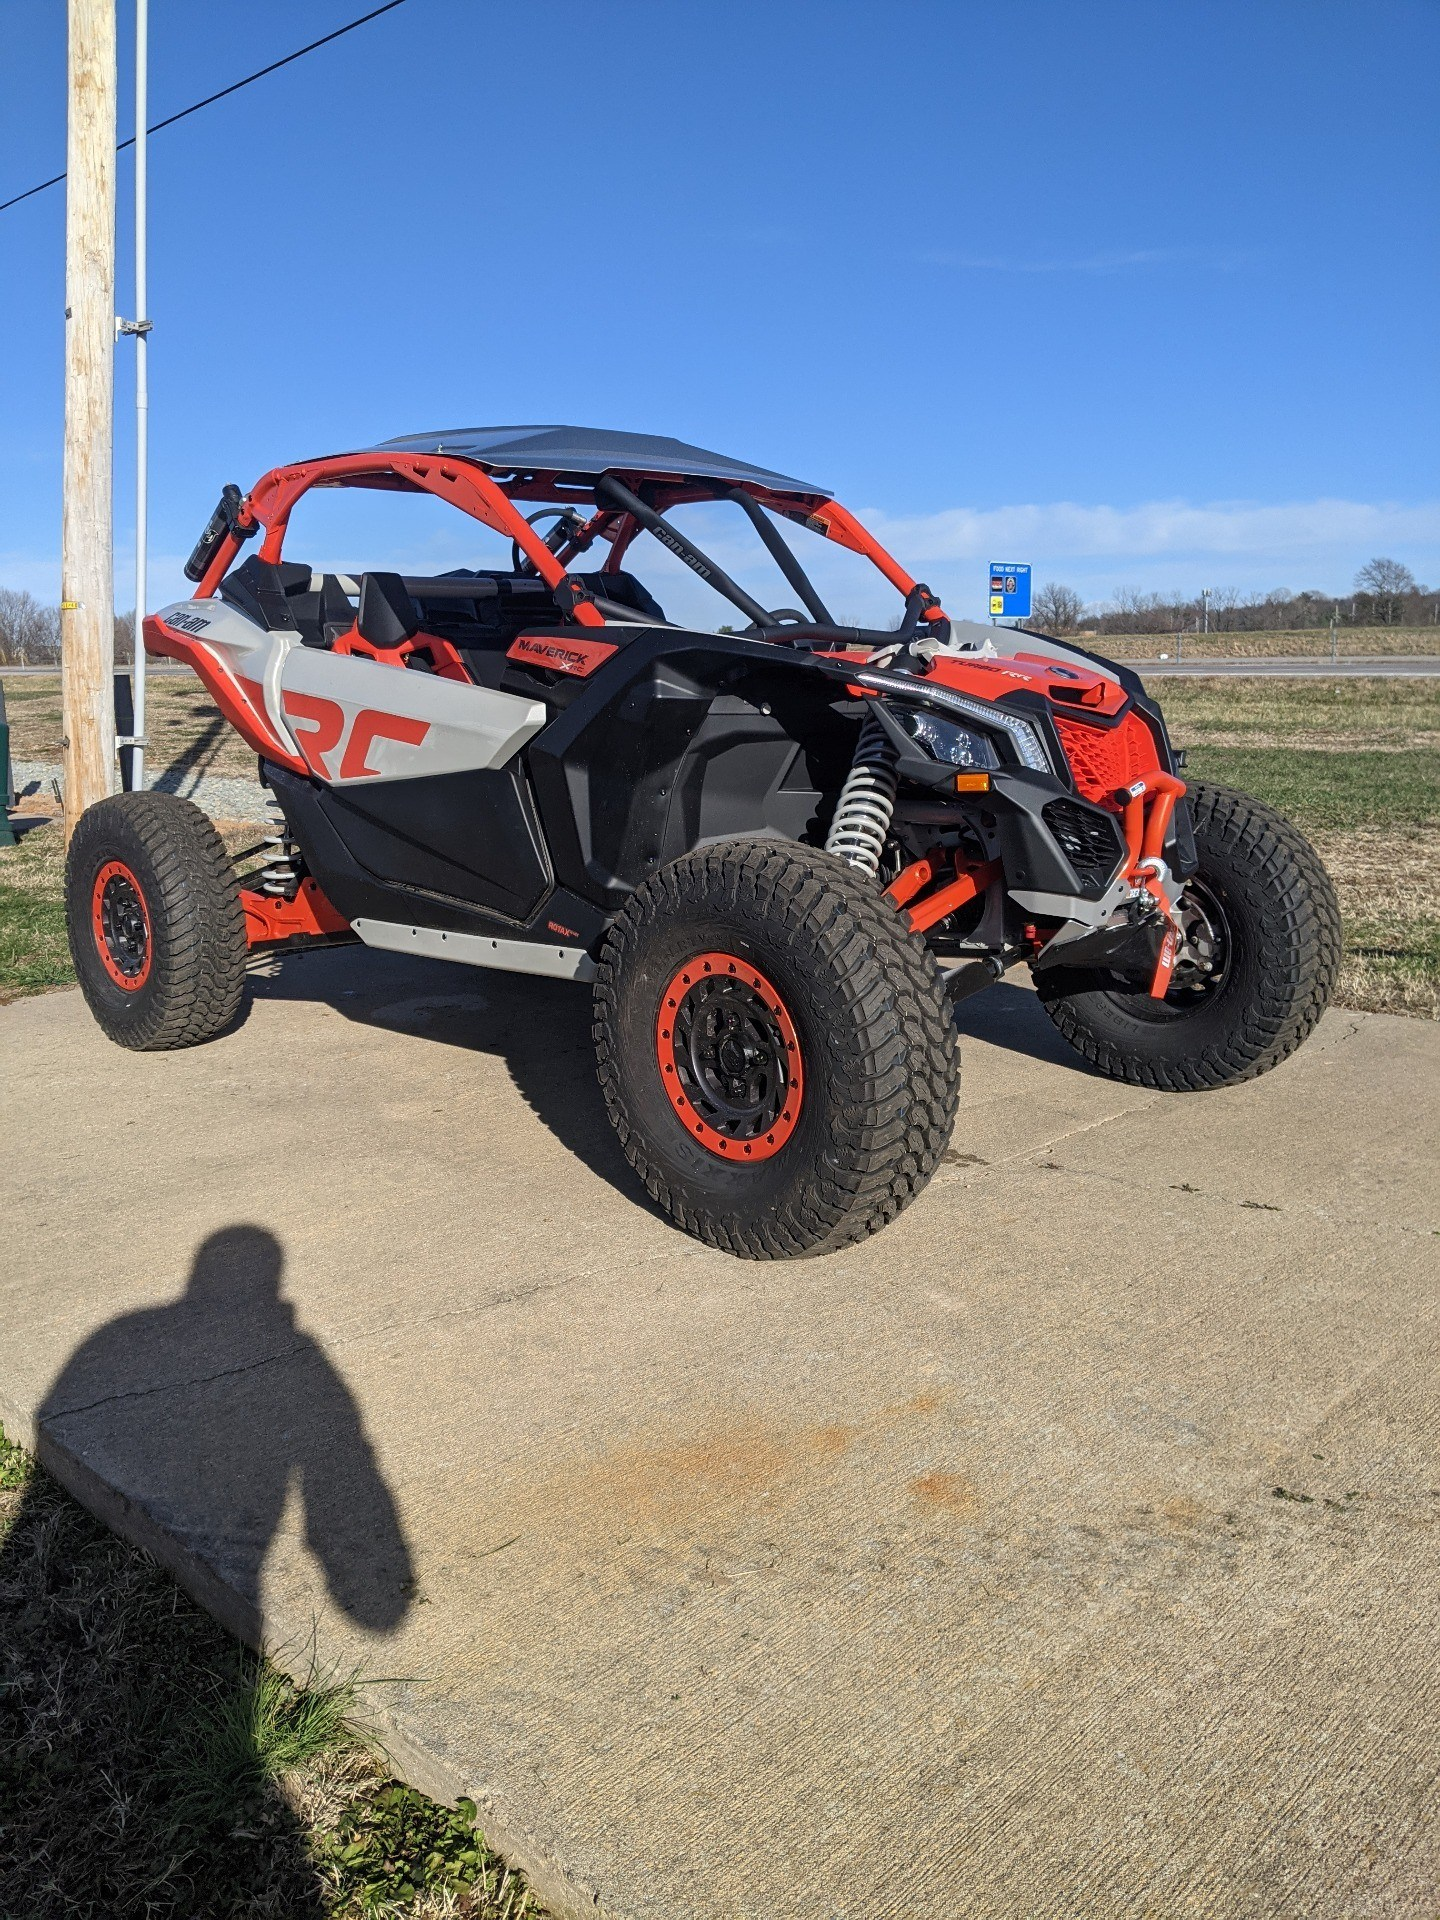 2021 Can-Am Maverick X3 X RC Turbo RR in Farmington, Missouri - Photo 1